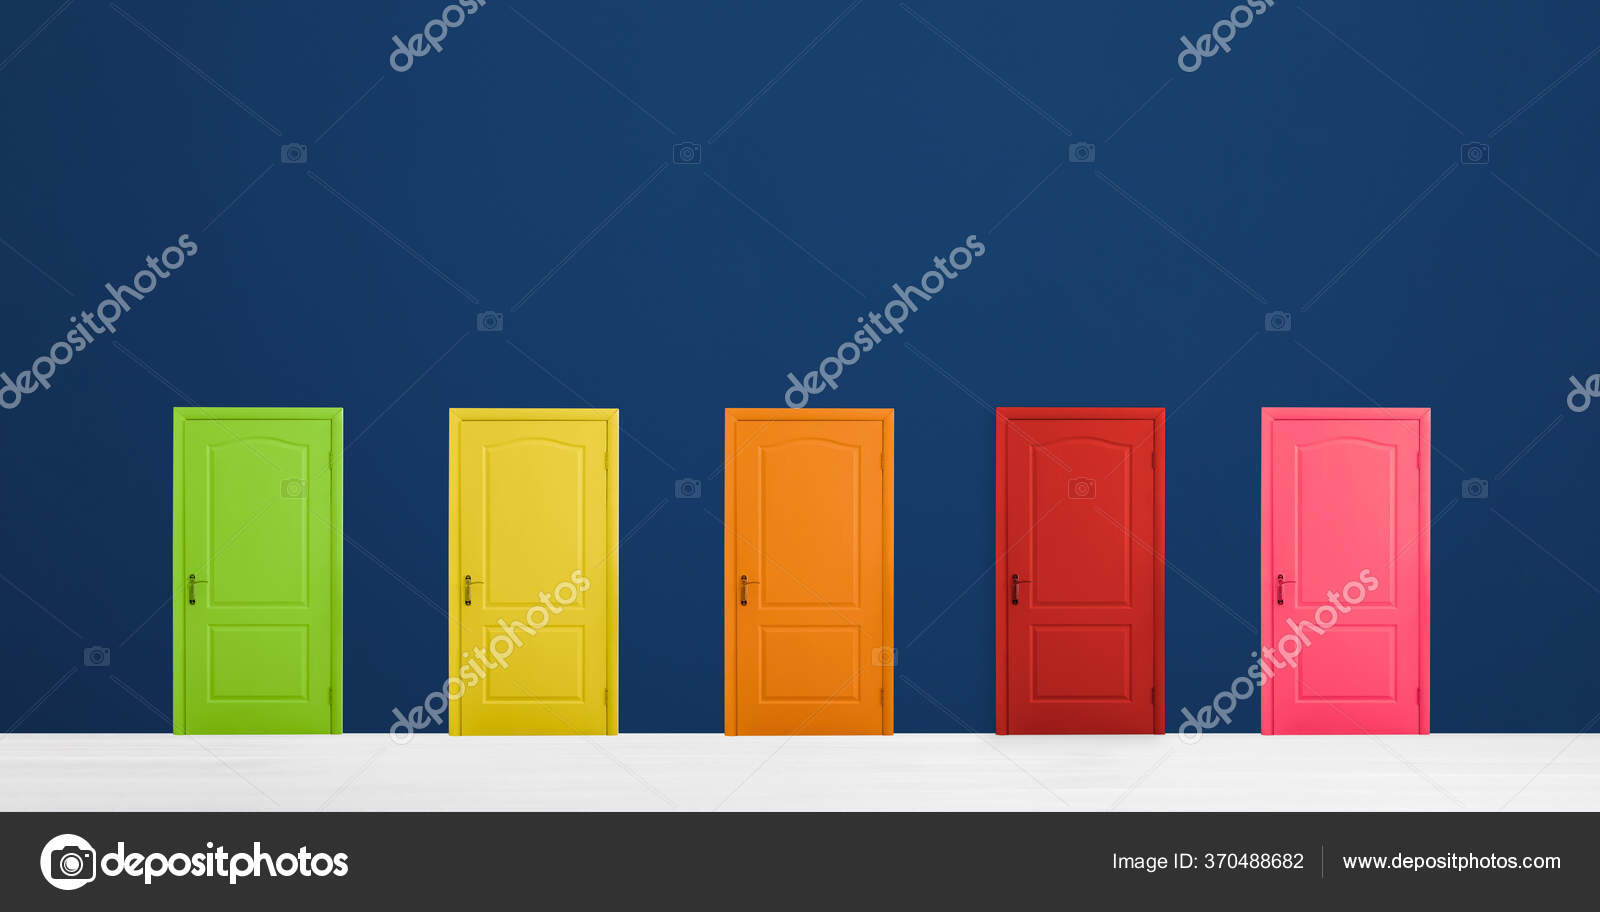 Many attractive doors - which one do you choose?